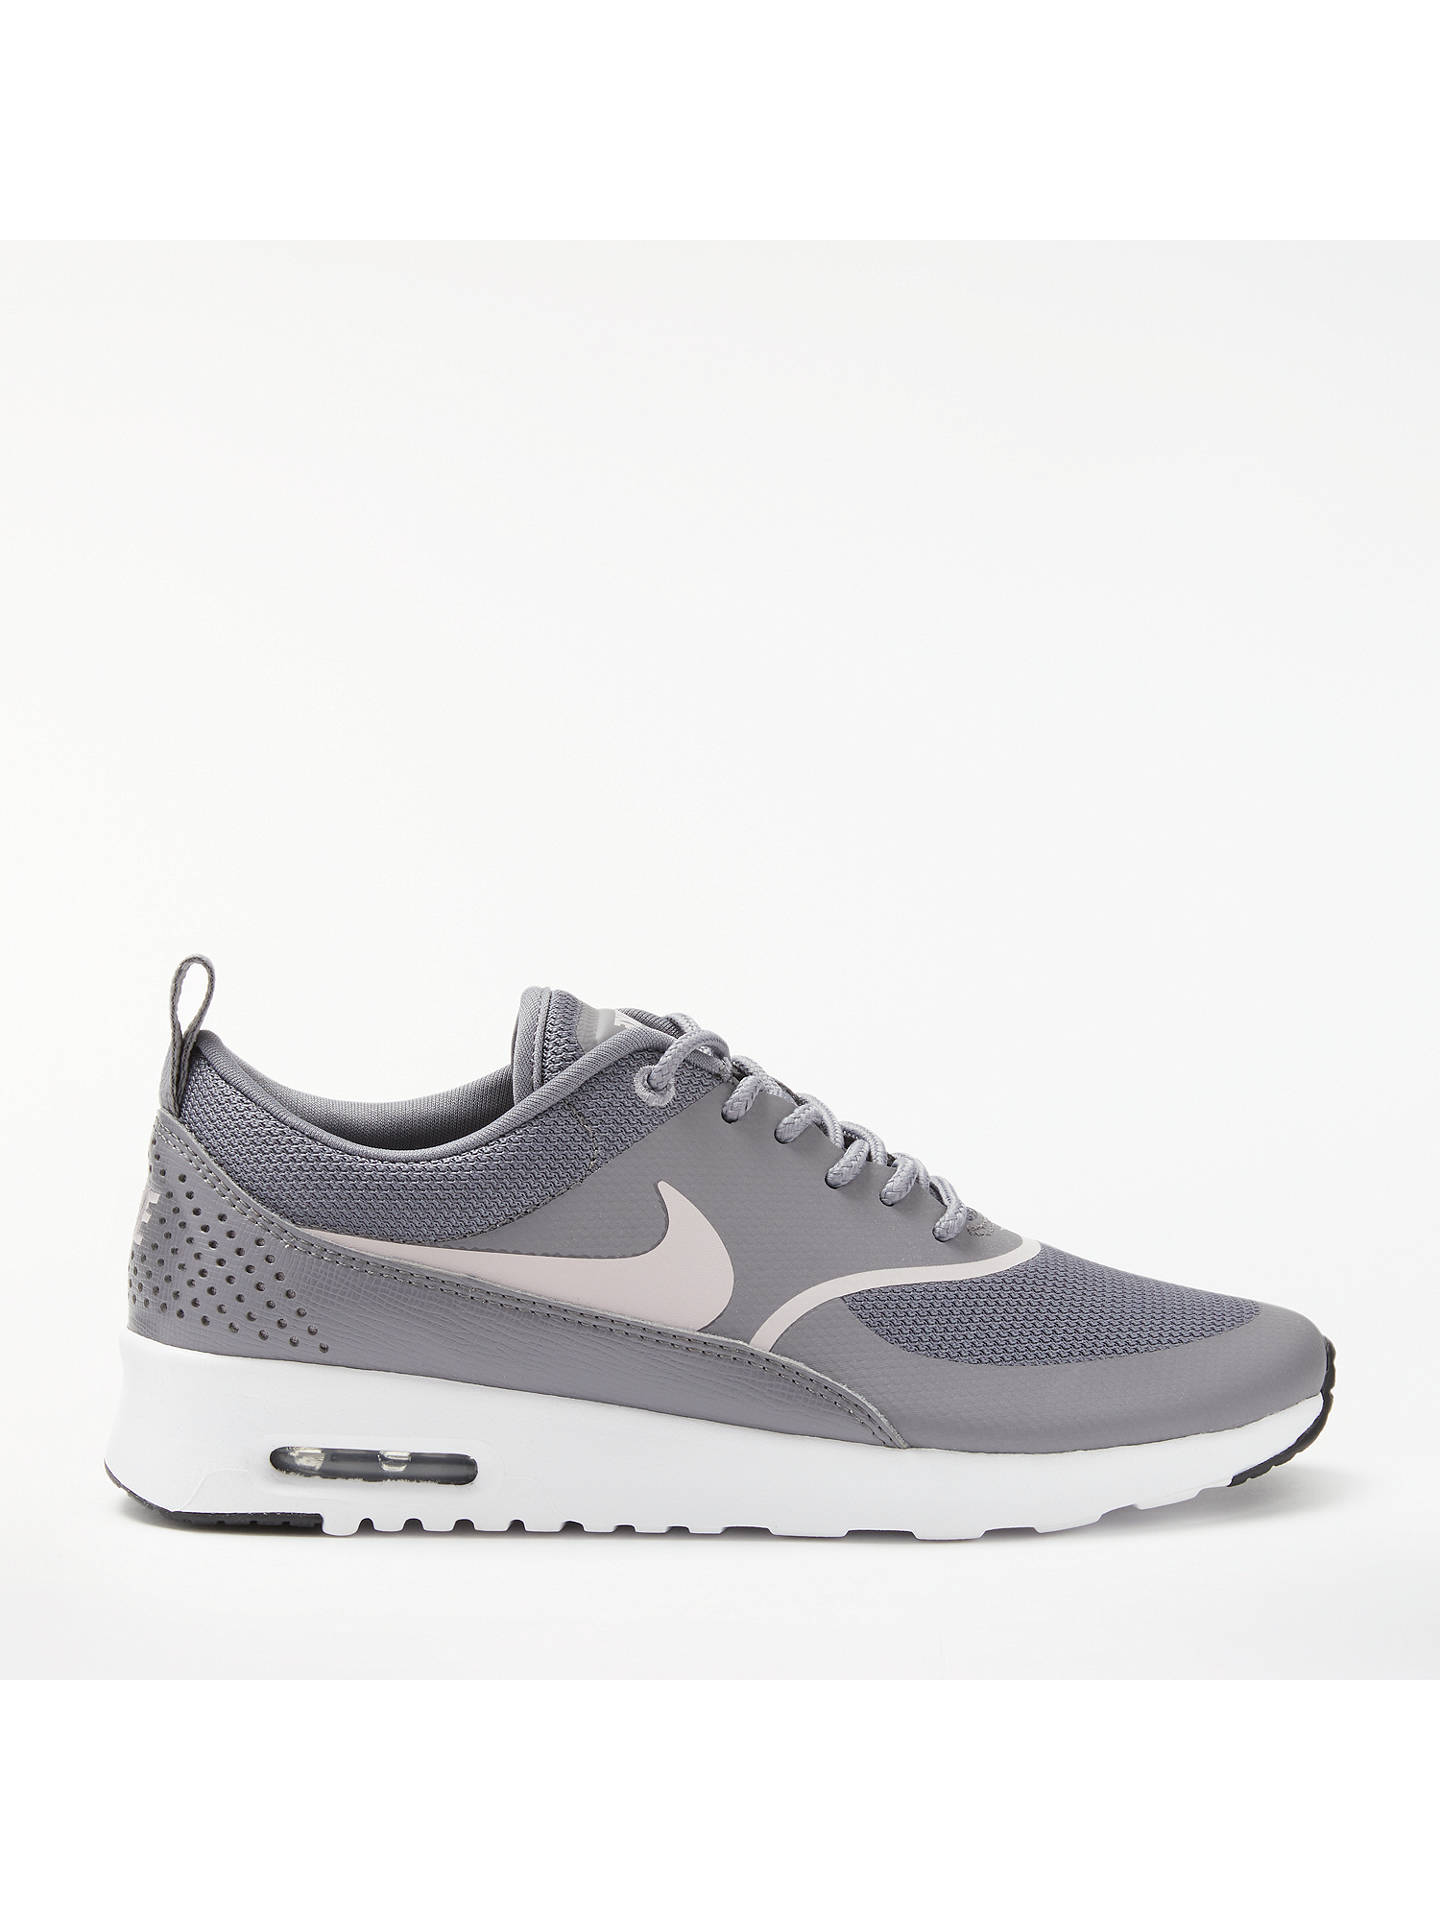 717cf42b0e1 Nike Air Max Thea Women s Trainers at John Lewis   Partners